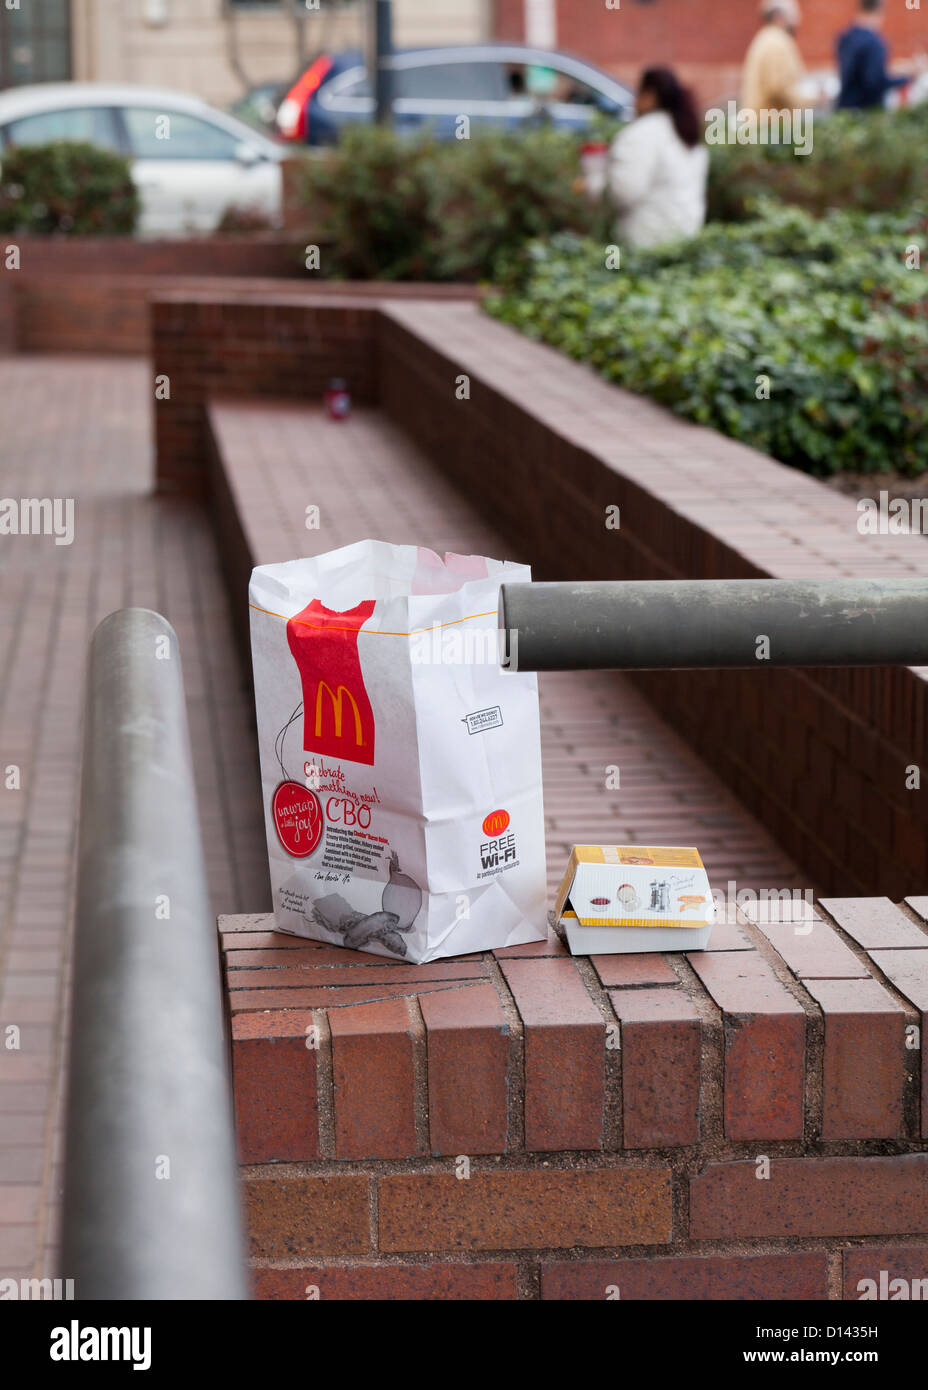 Discarded Mcdonald's takeout bag - Stock Image